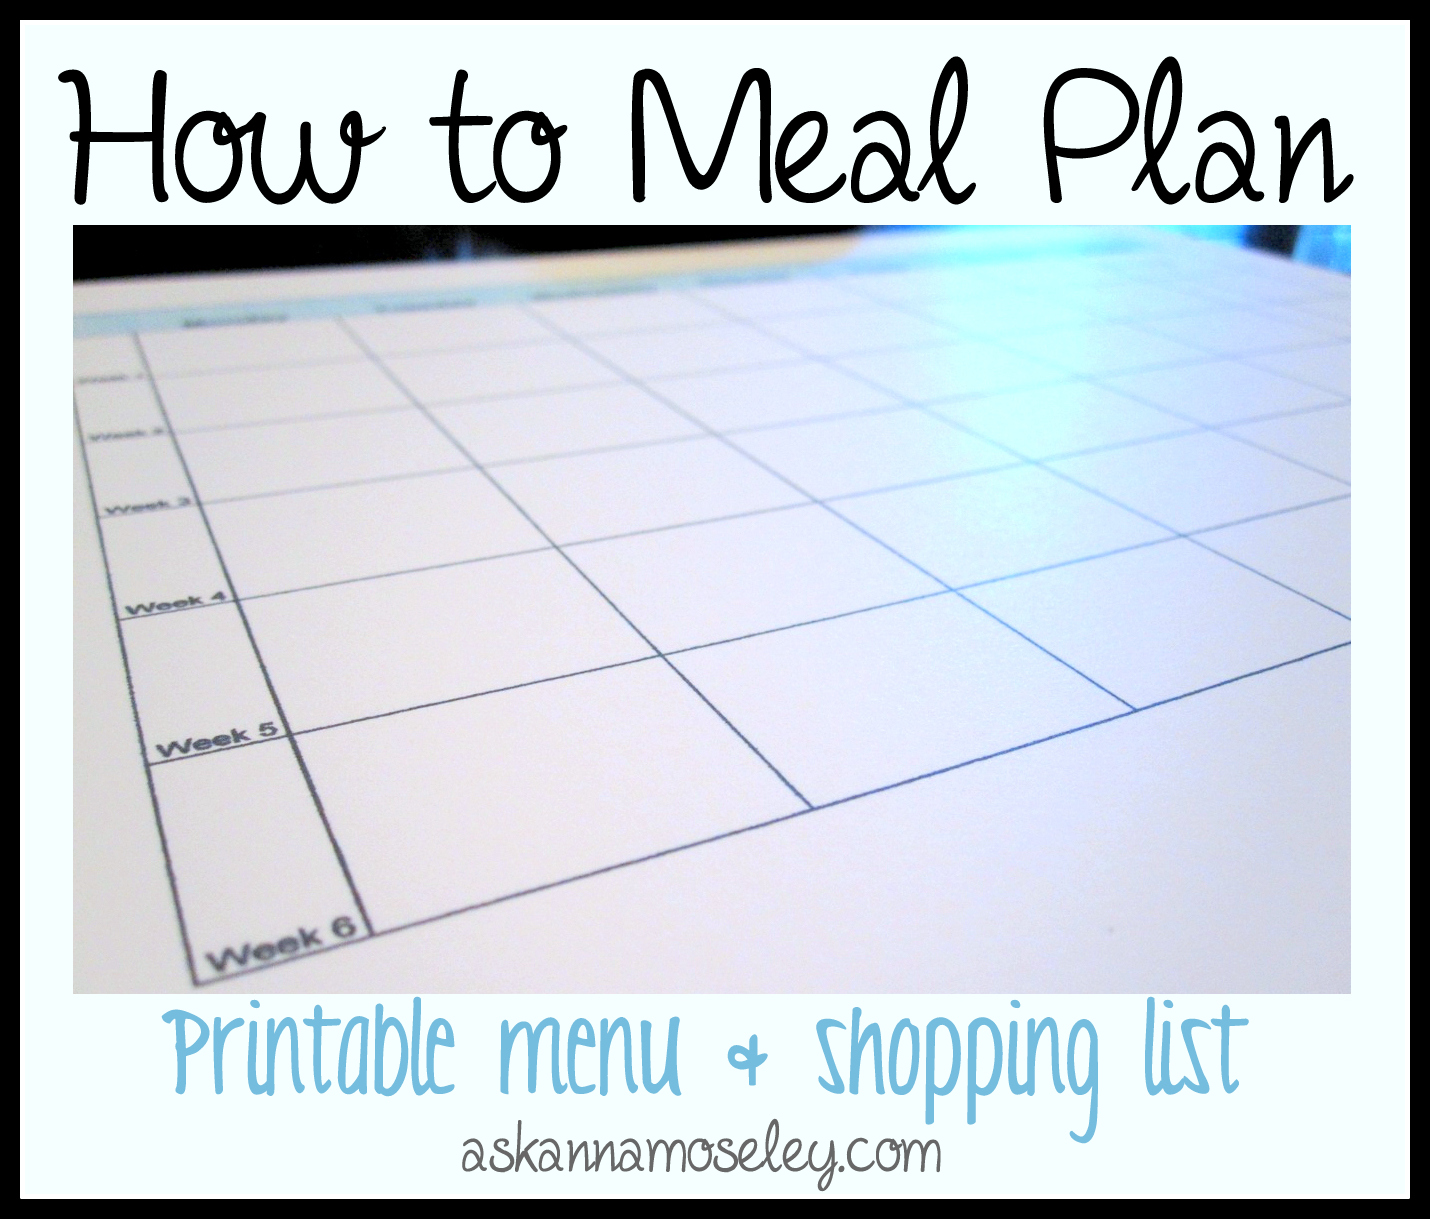 How to Meal Plan